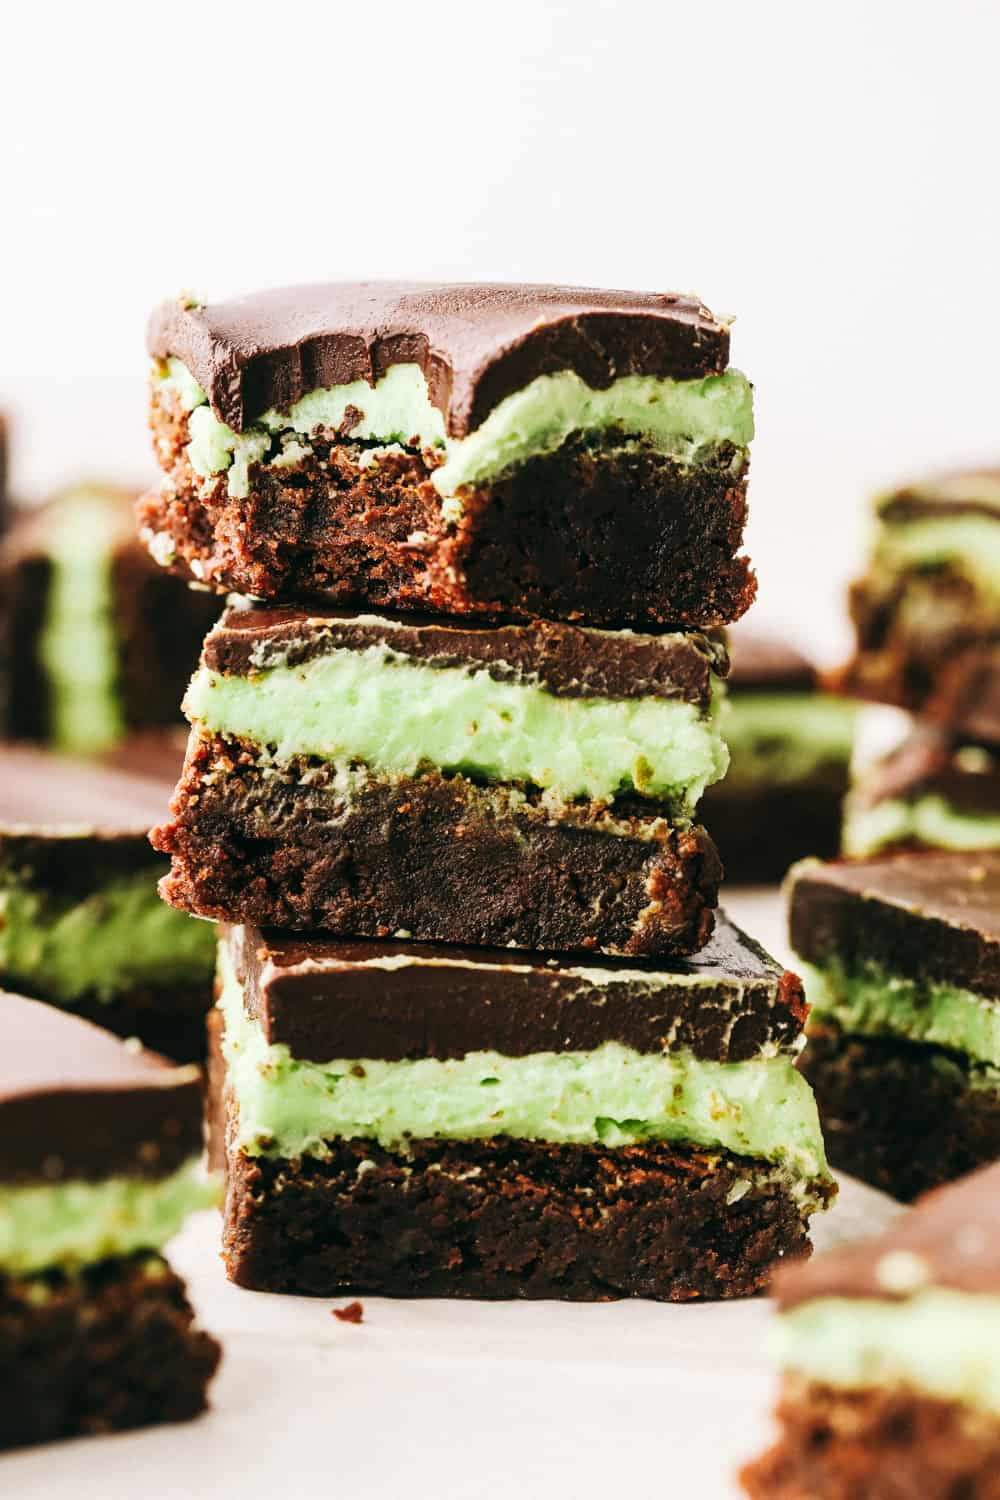 Mint brownies stacked on top of each other.